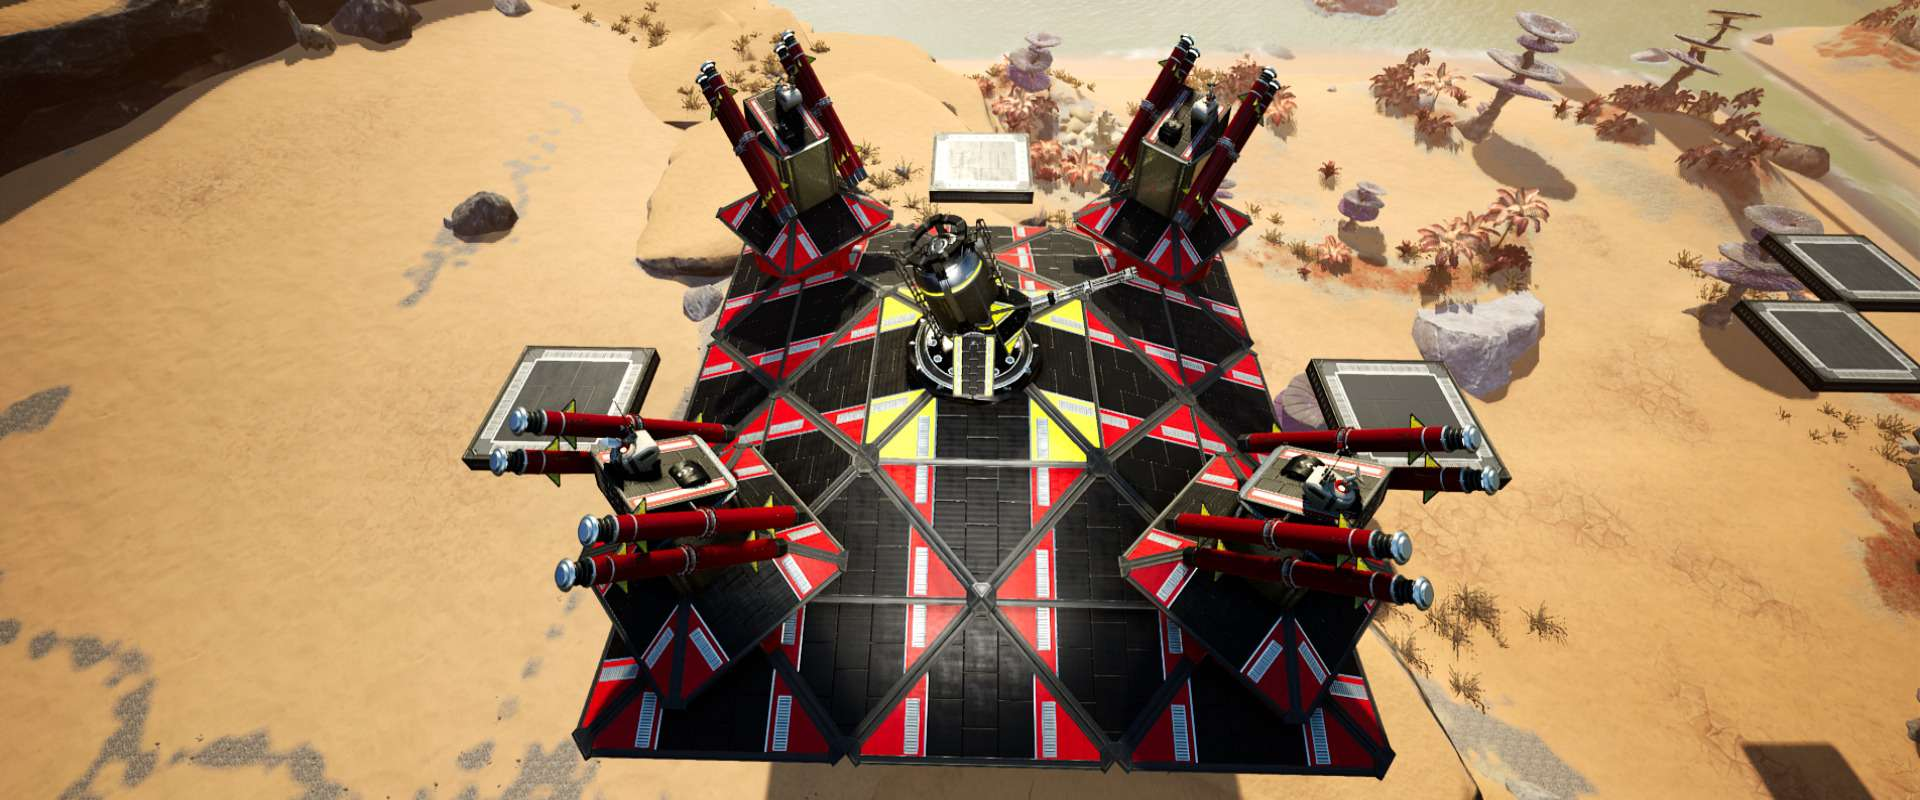 roof 3x3 pyramidal Weaponed